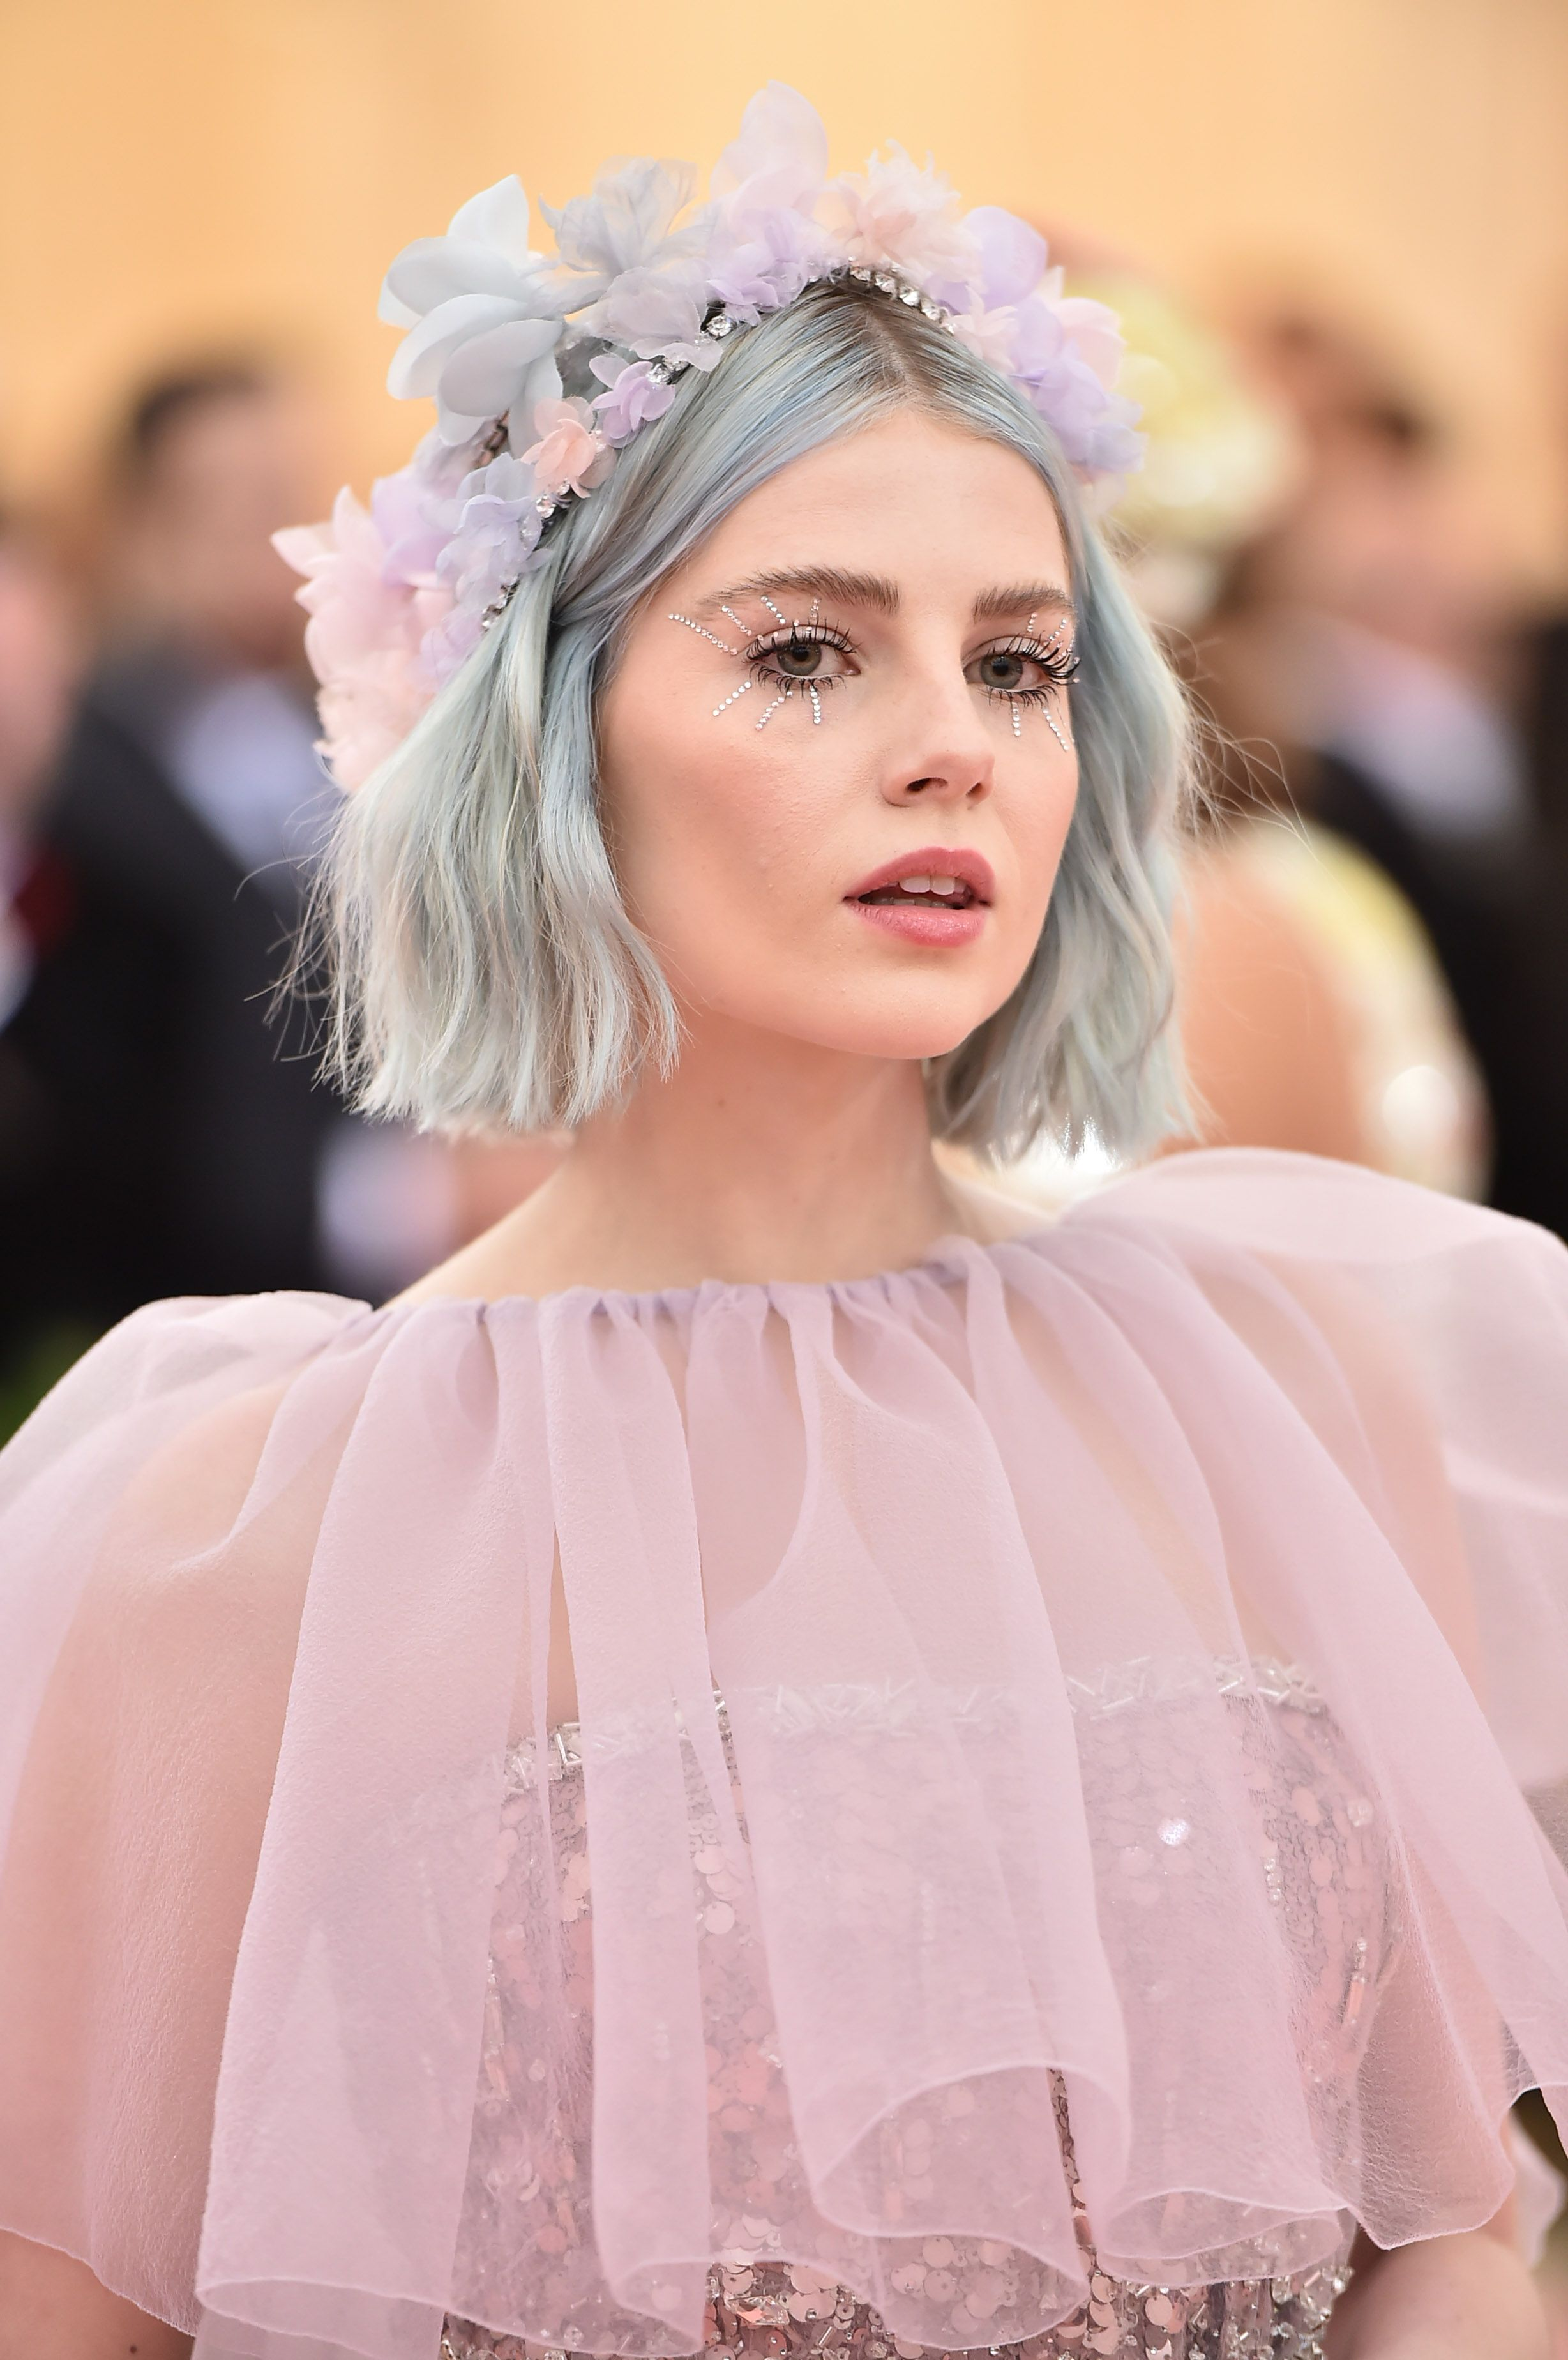 Lucy Boynton Lucy Boynton is a true beauty, and can pull any look off flawlessly. I hope this is not the end of her mermaid pastel blue hair she debuted on the red carpet.